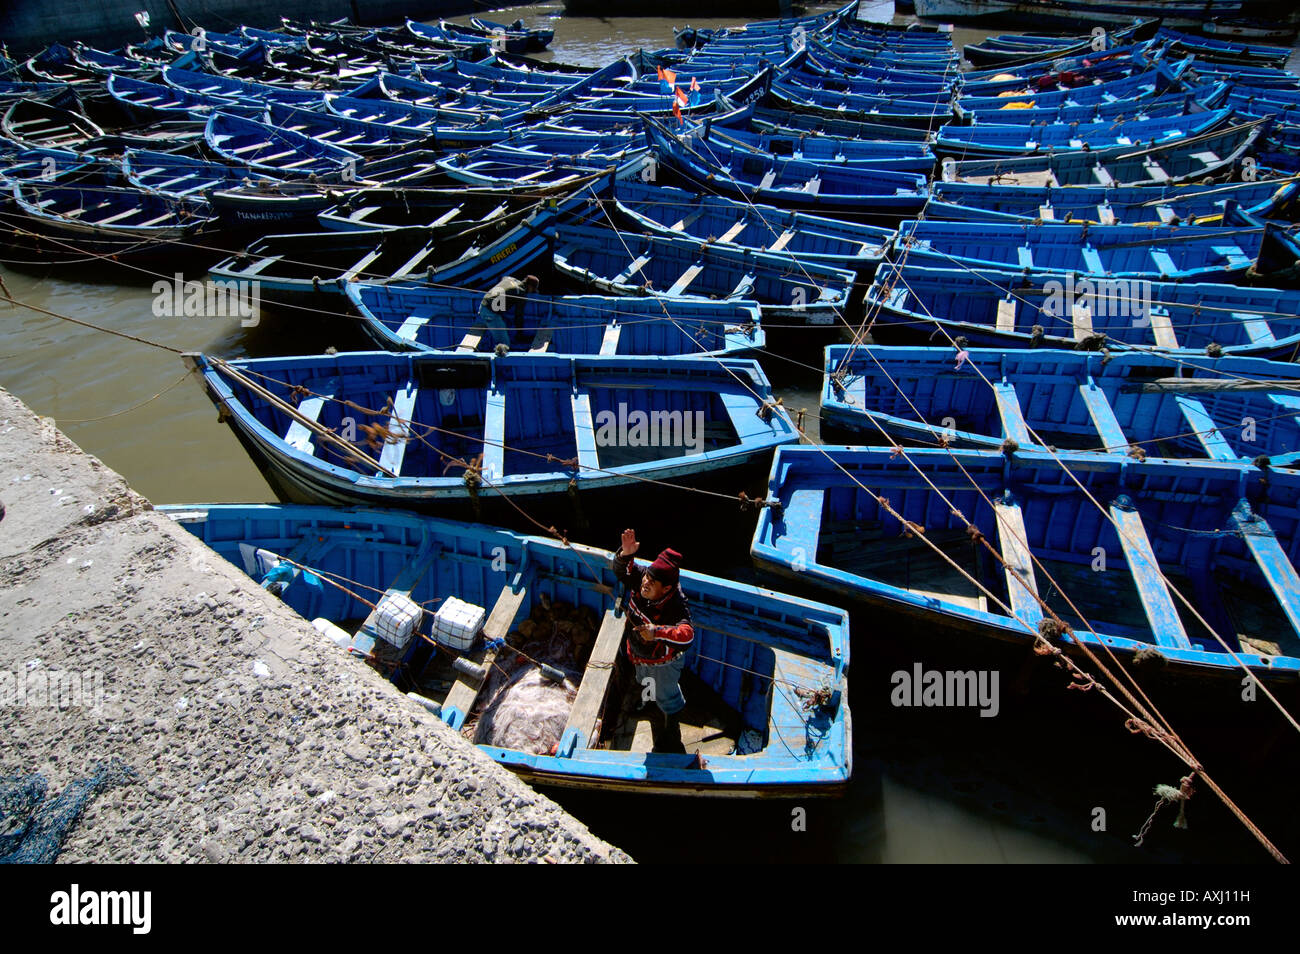 Man tying a boat in port Essaouria Morocco - Stock Image